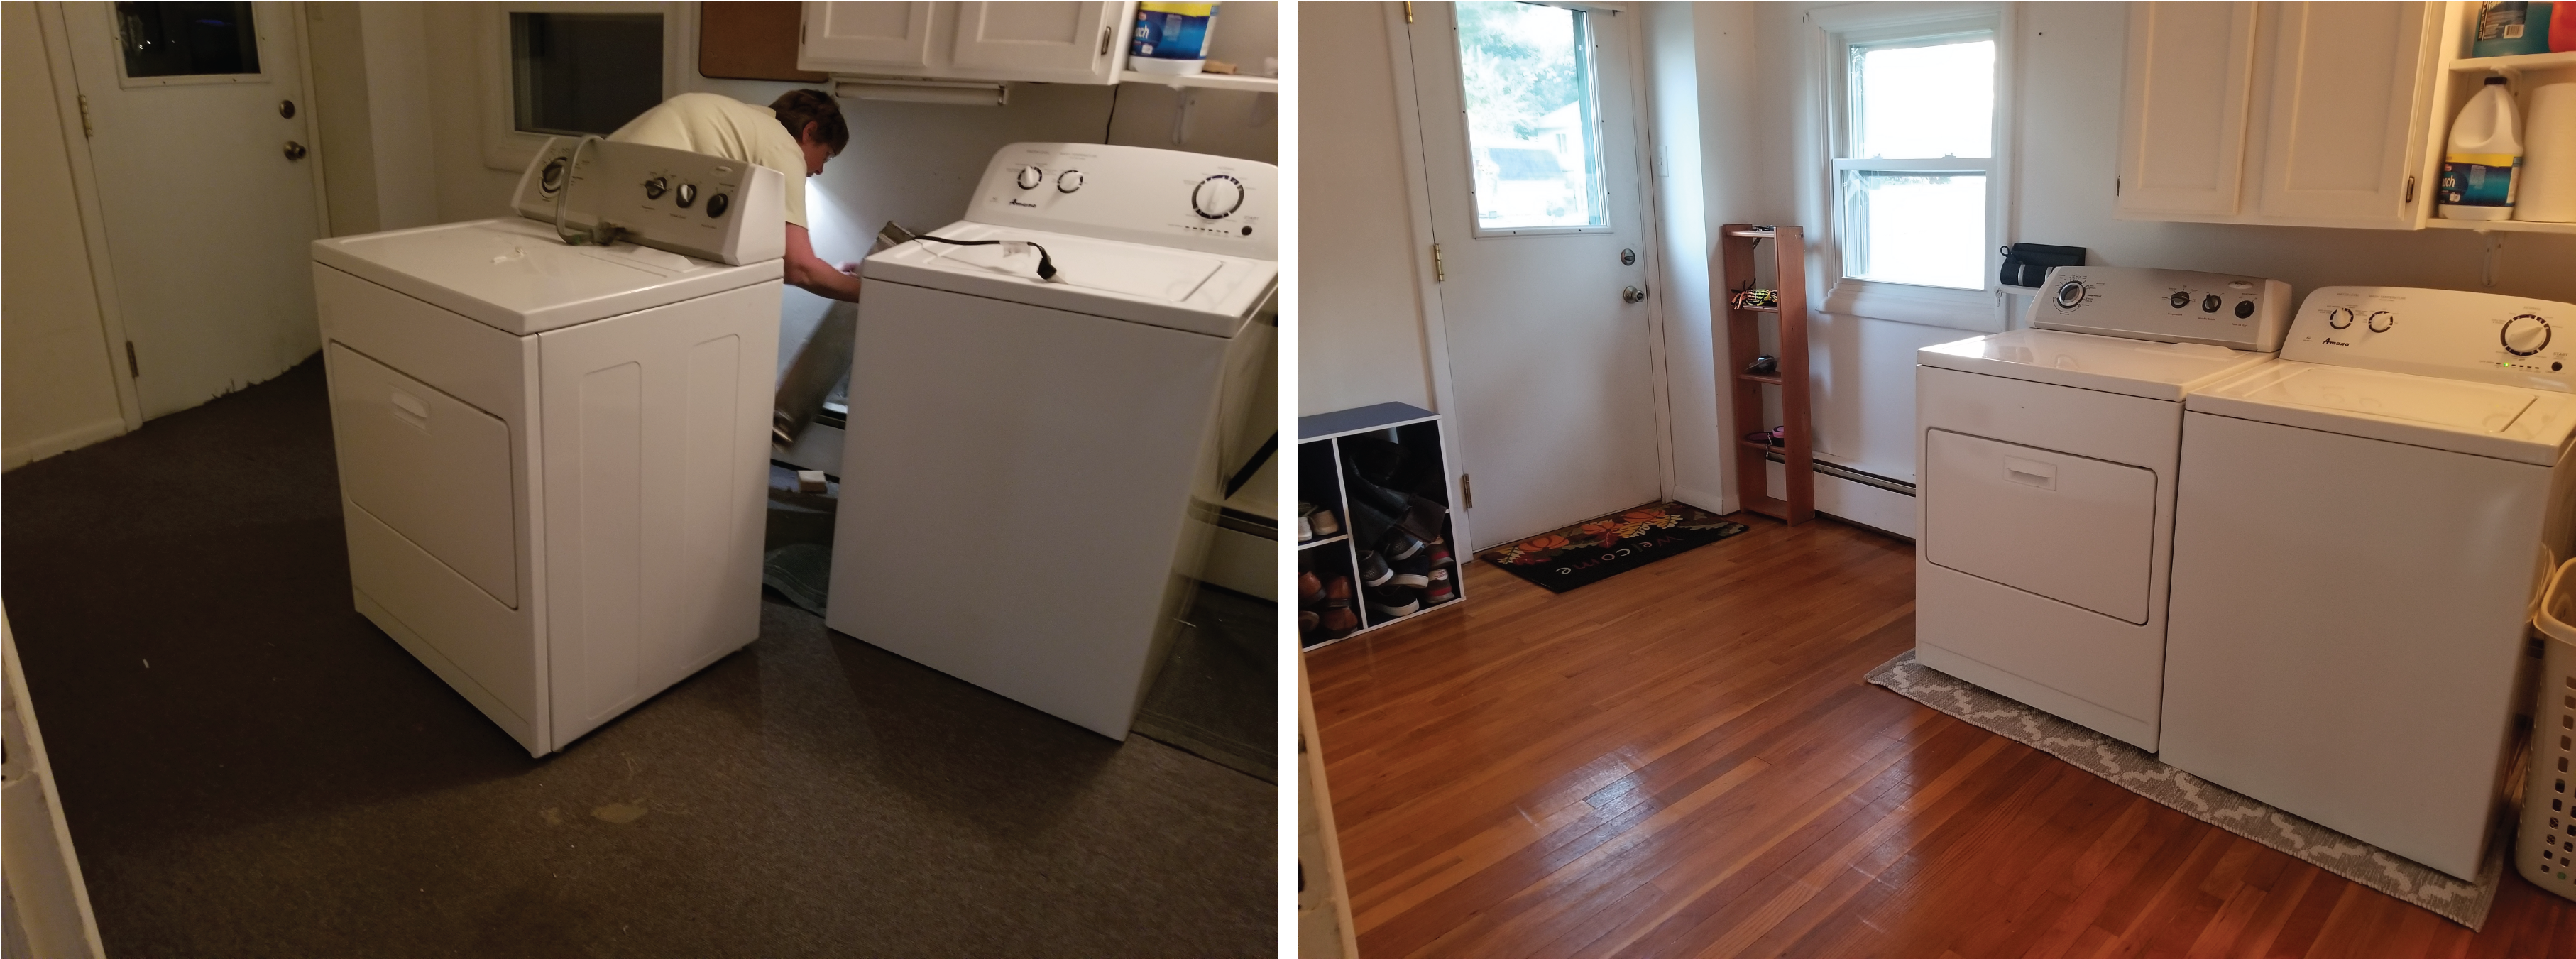 before-and-after-mudroom-33